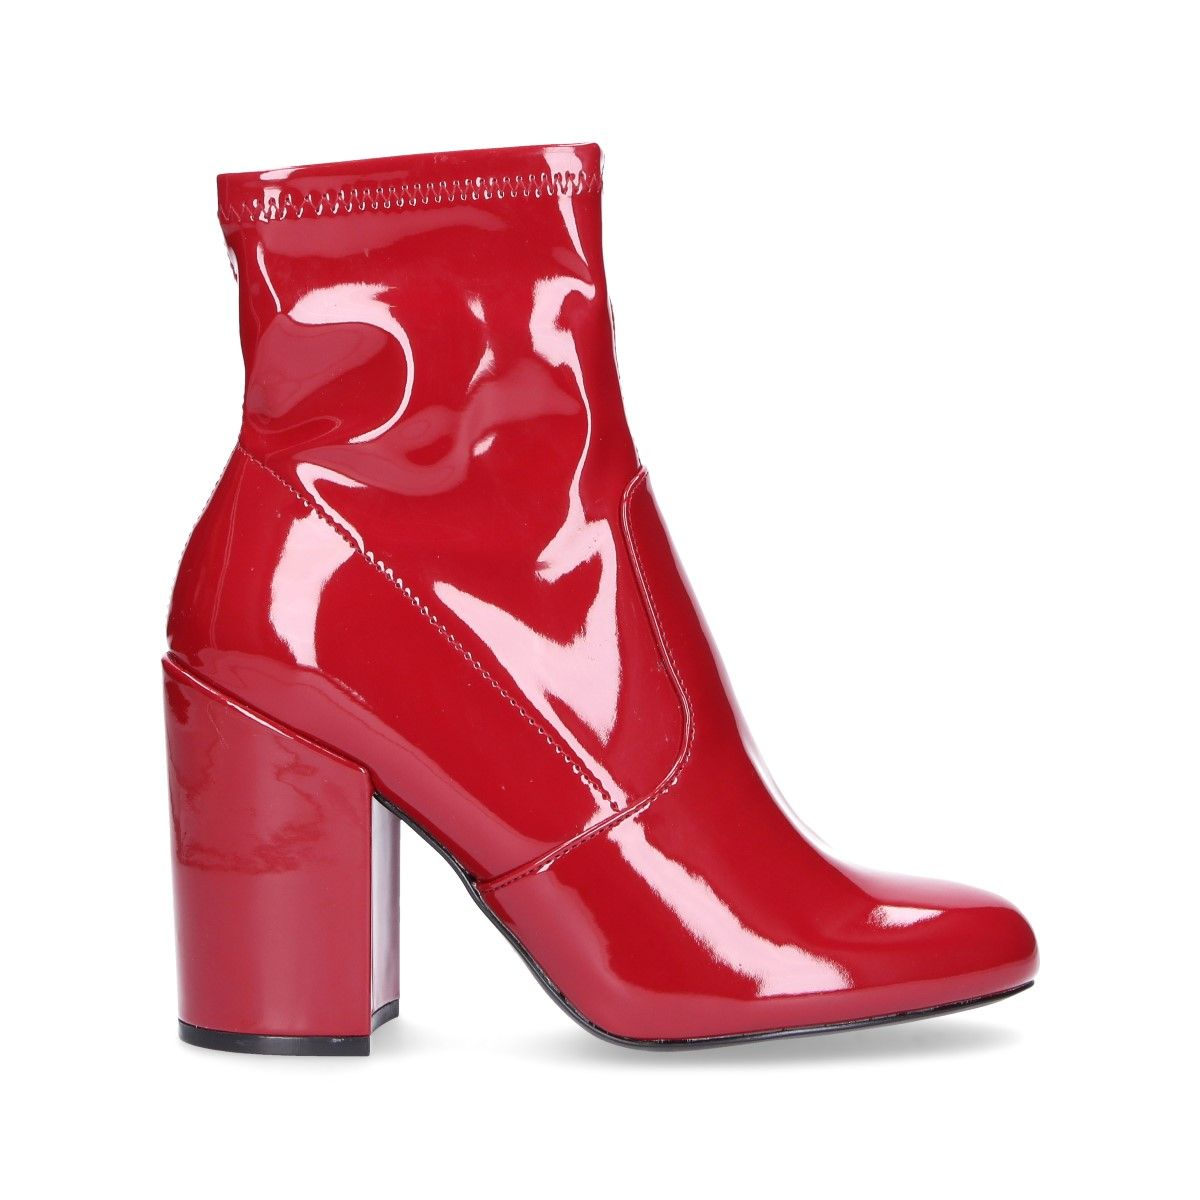 Arena himno Nacional aceptar  Steve Madden Red Ankle Boots | ModeSens